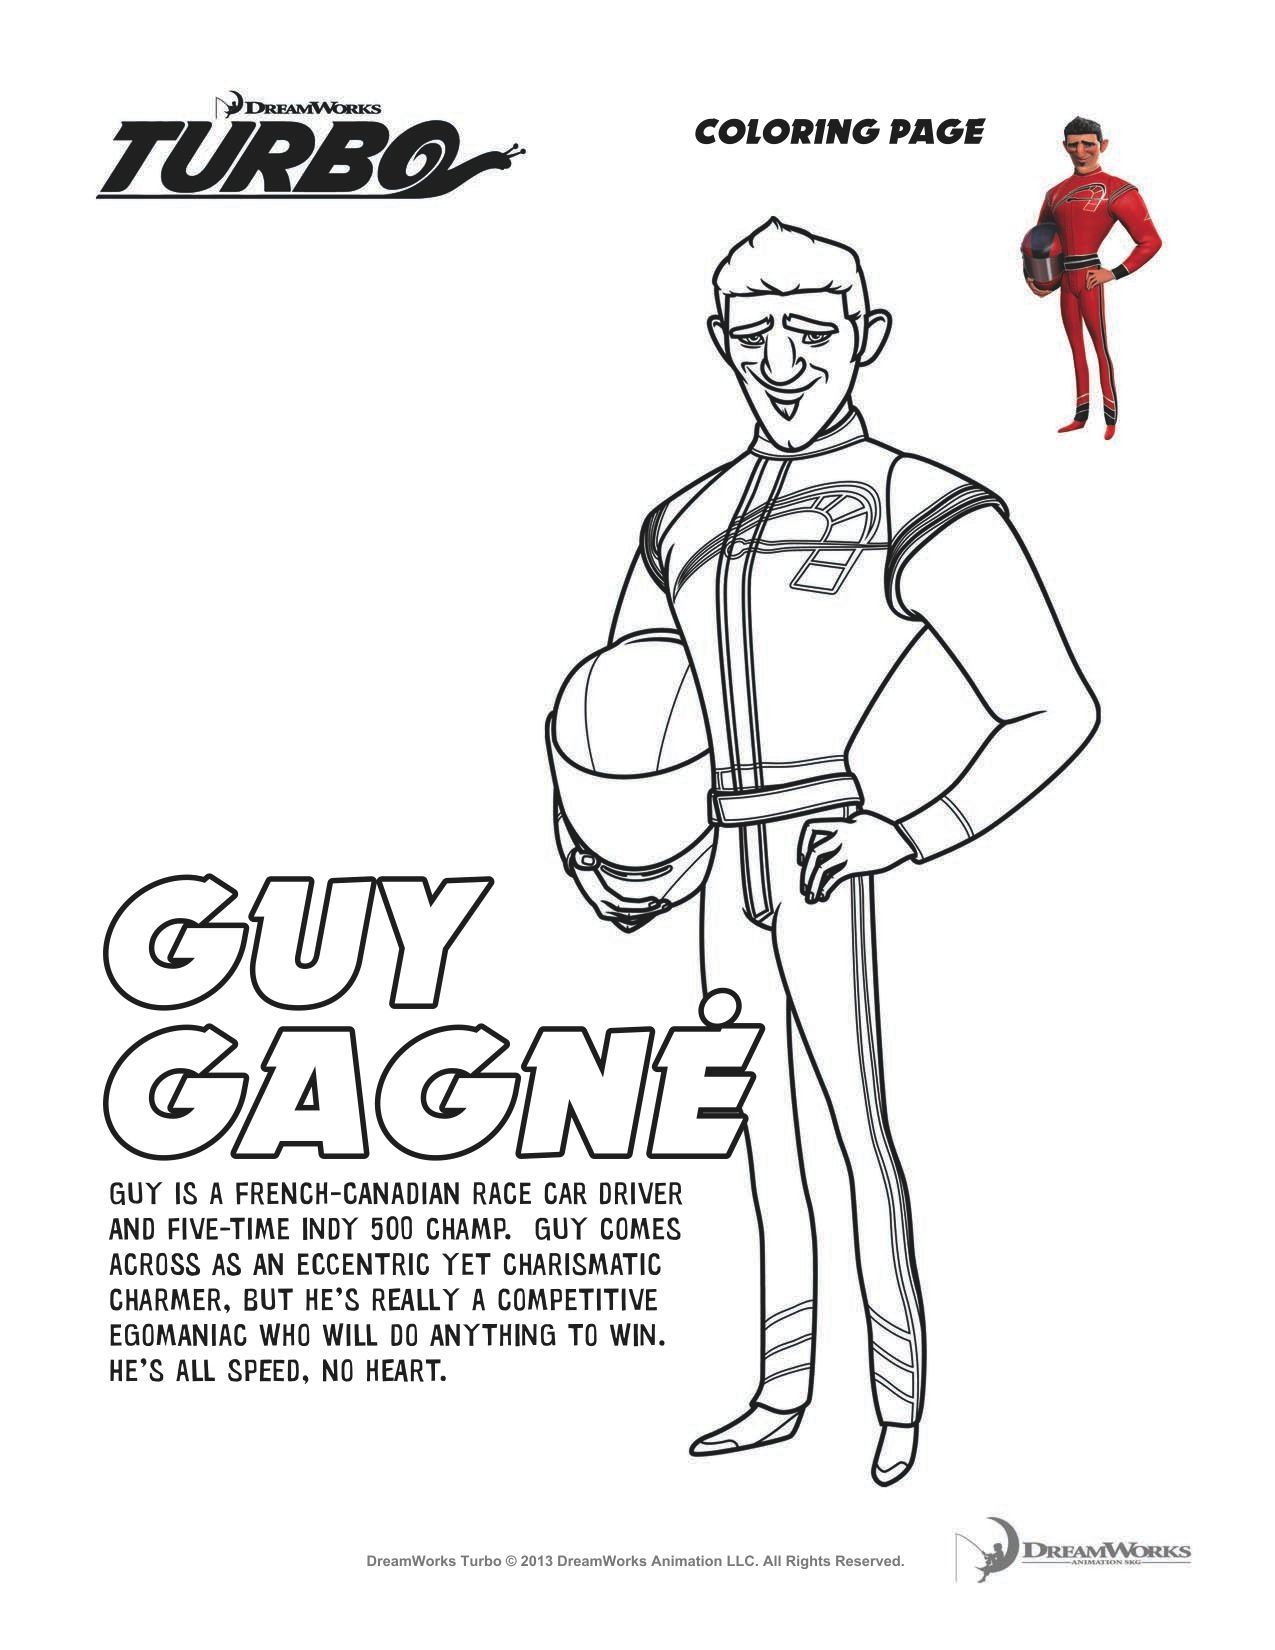 Turbo Guy Gagne Coloring Sheet Coloring Pages Printable Coloring Pages Guys